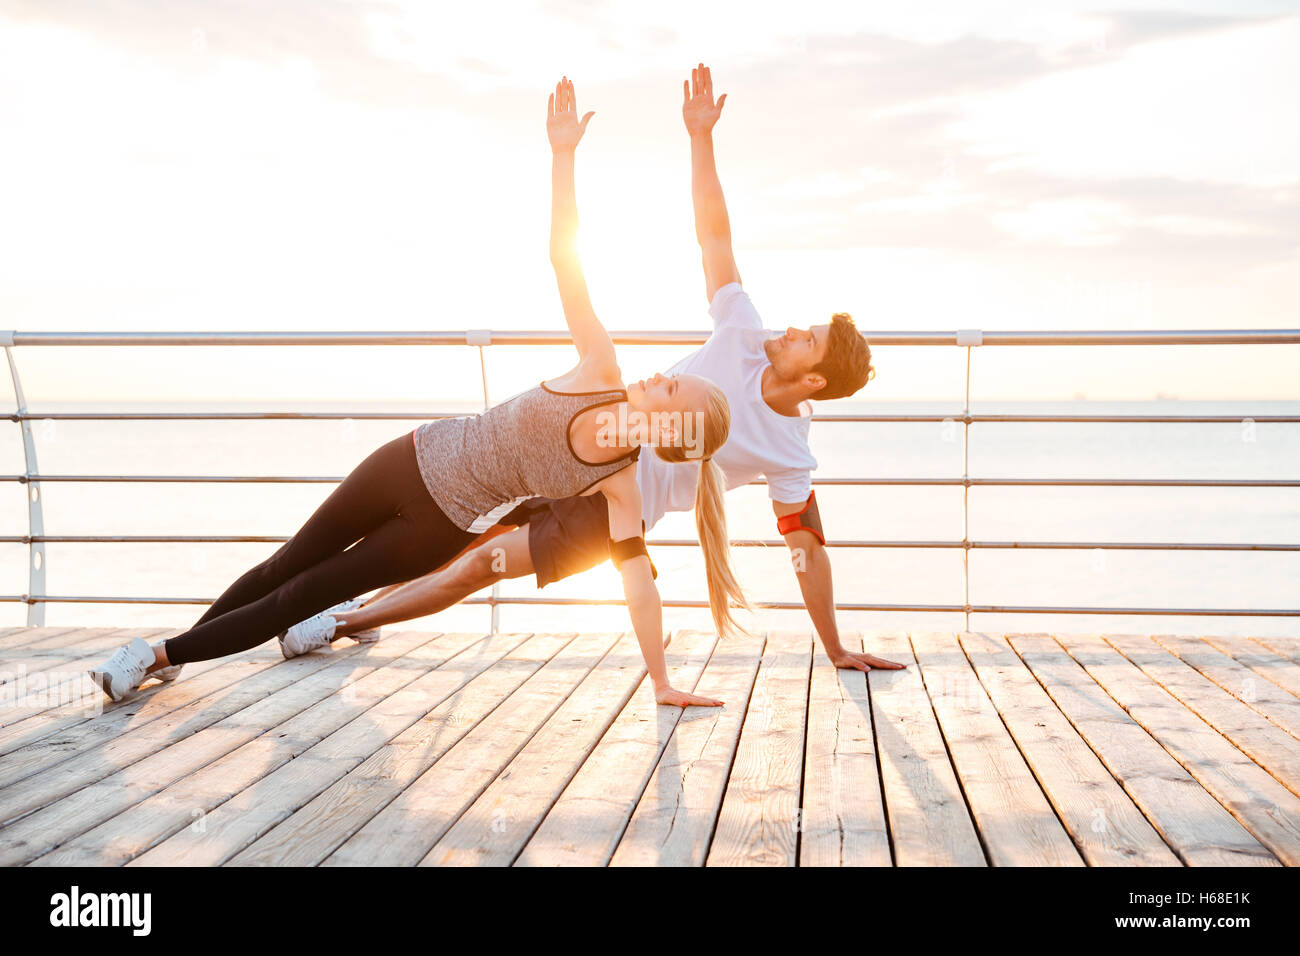 Smiling couple doing yoga exercises outdoors at the beach pier - Stock Image